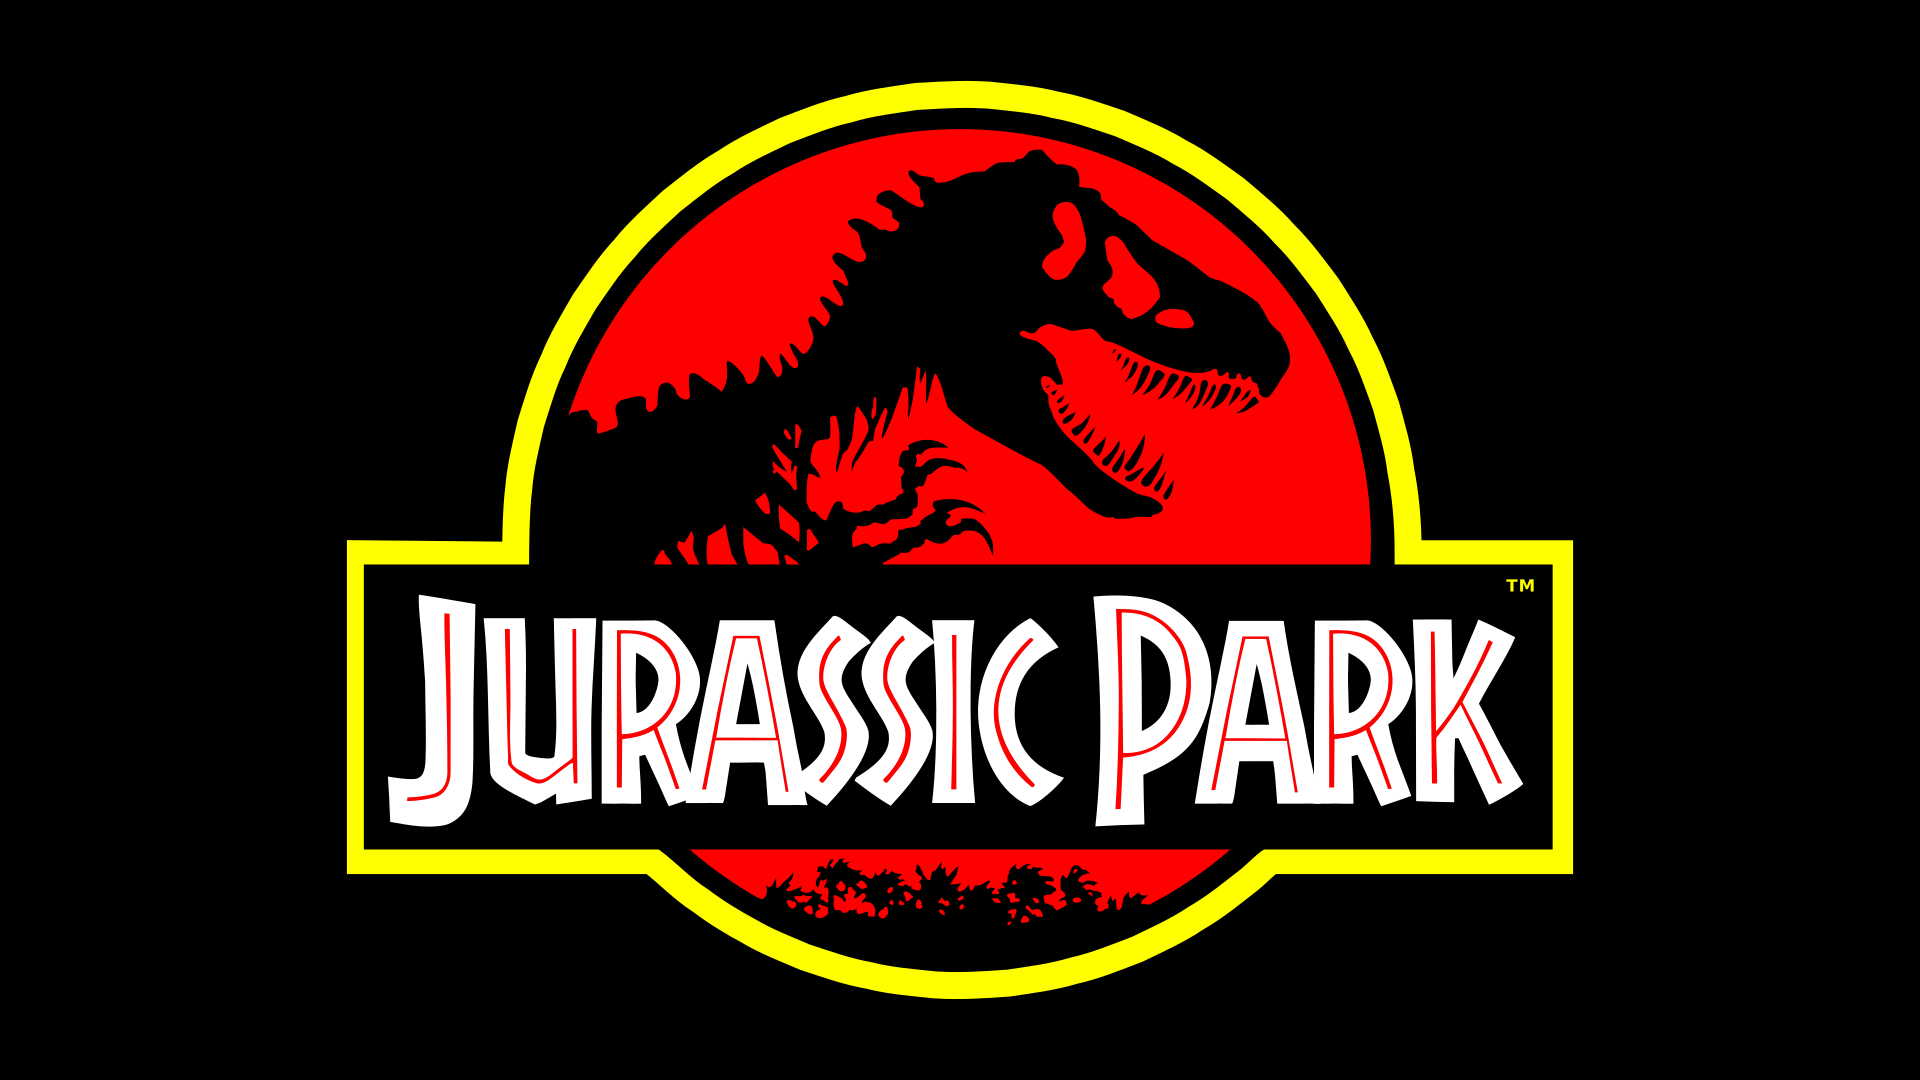 jurassic park logo svg #524, Download drawings